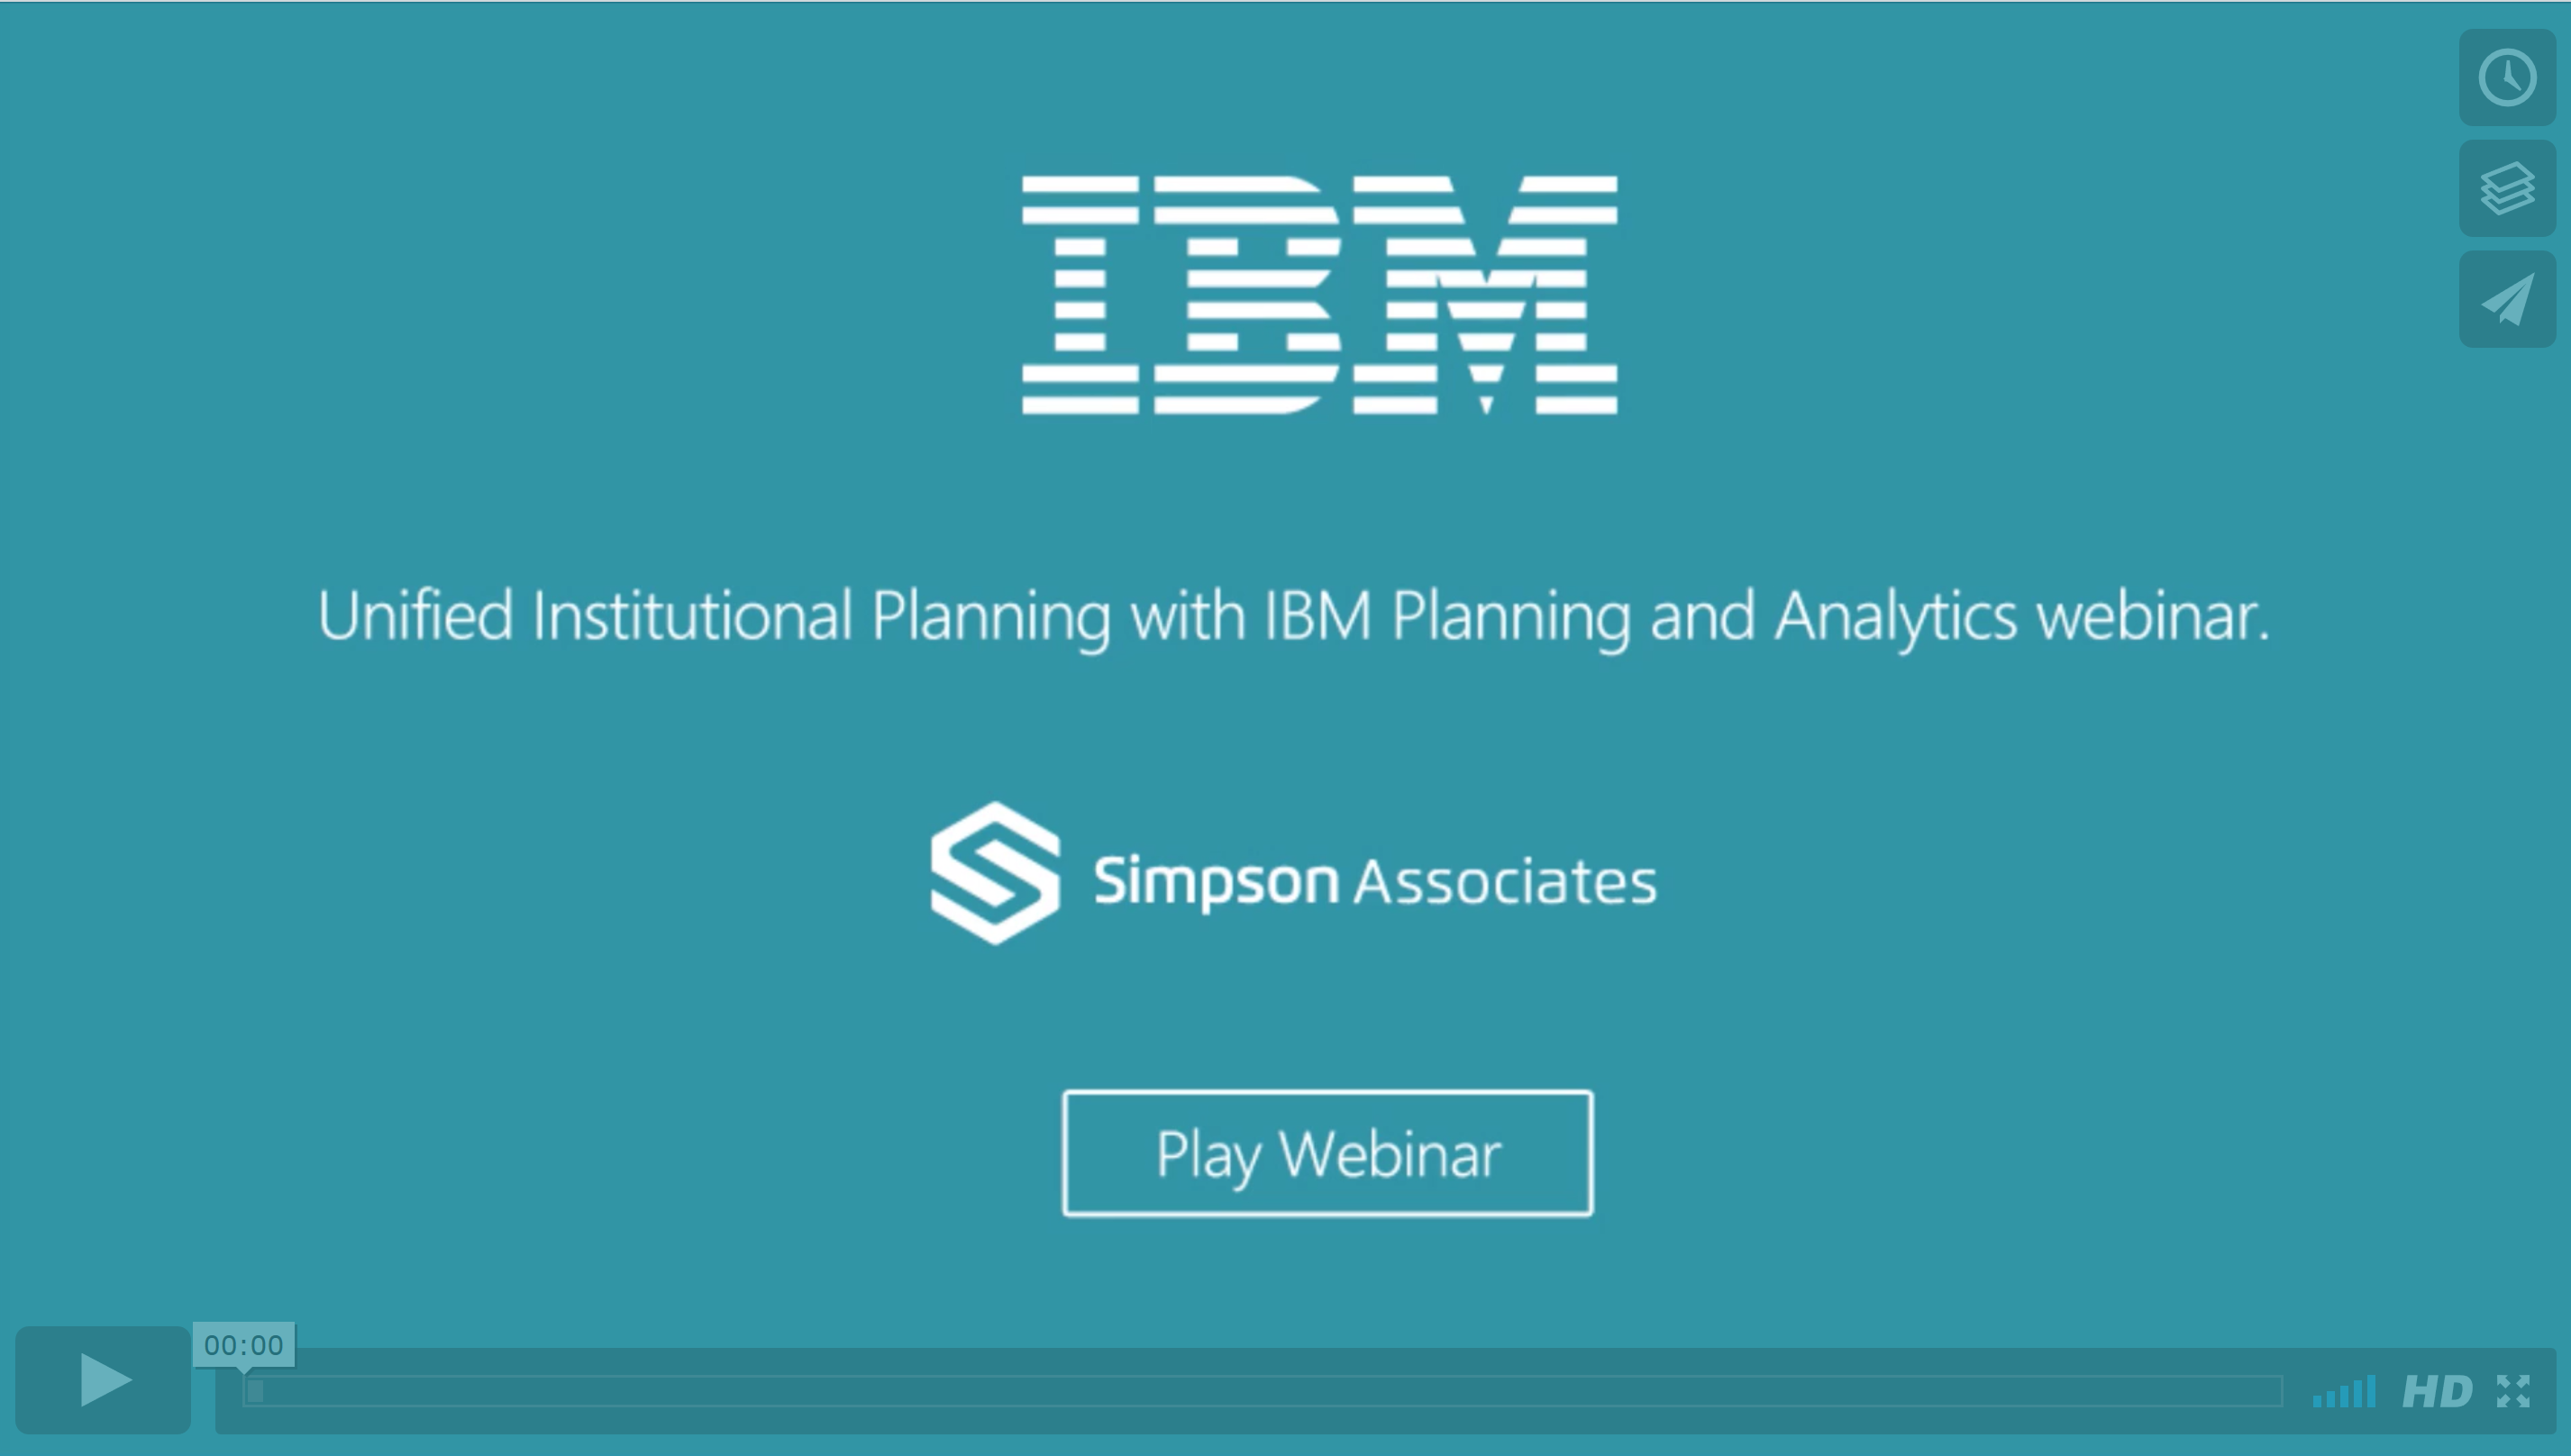 Unified Institutional Planning with IBM Planning & Analytics